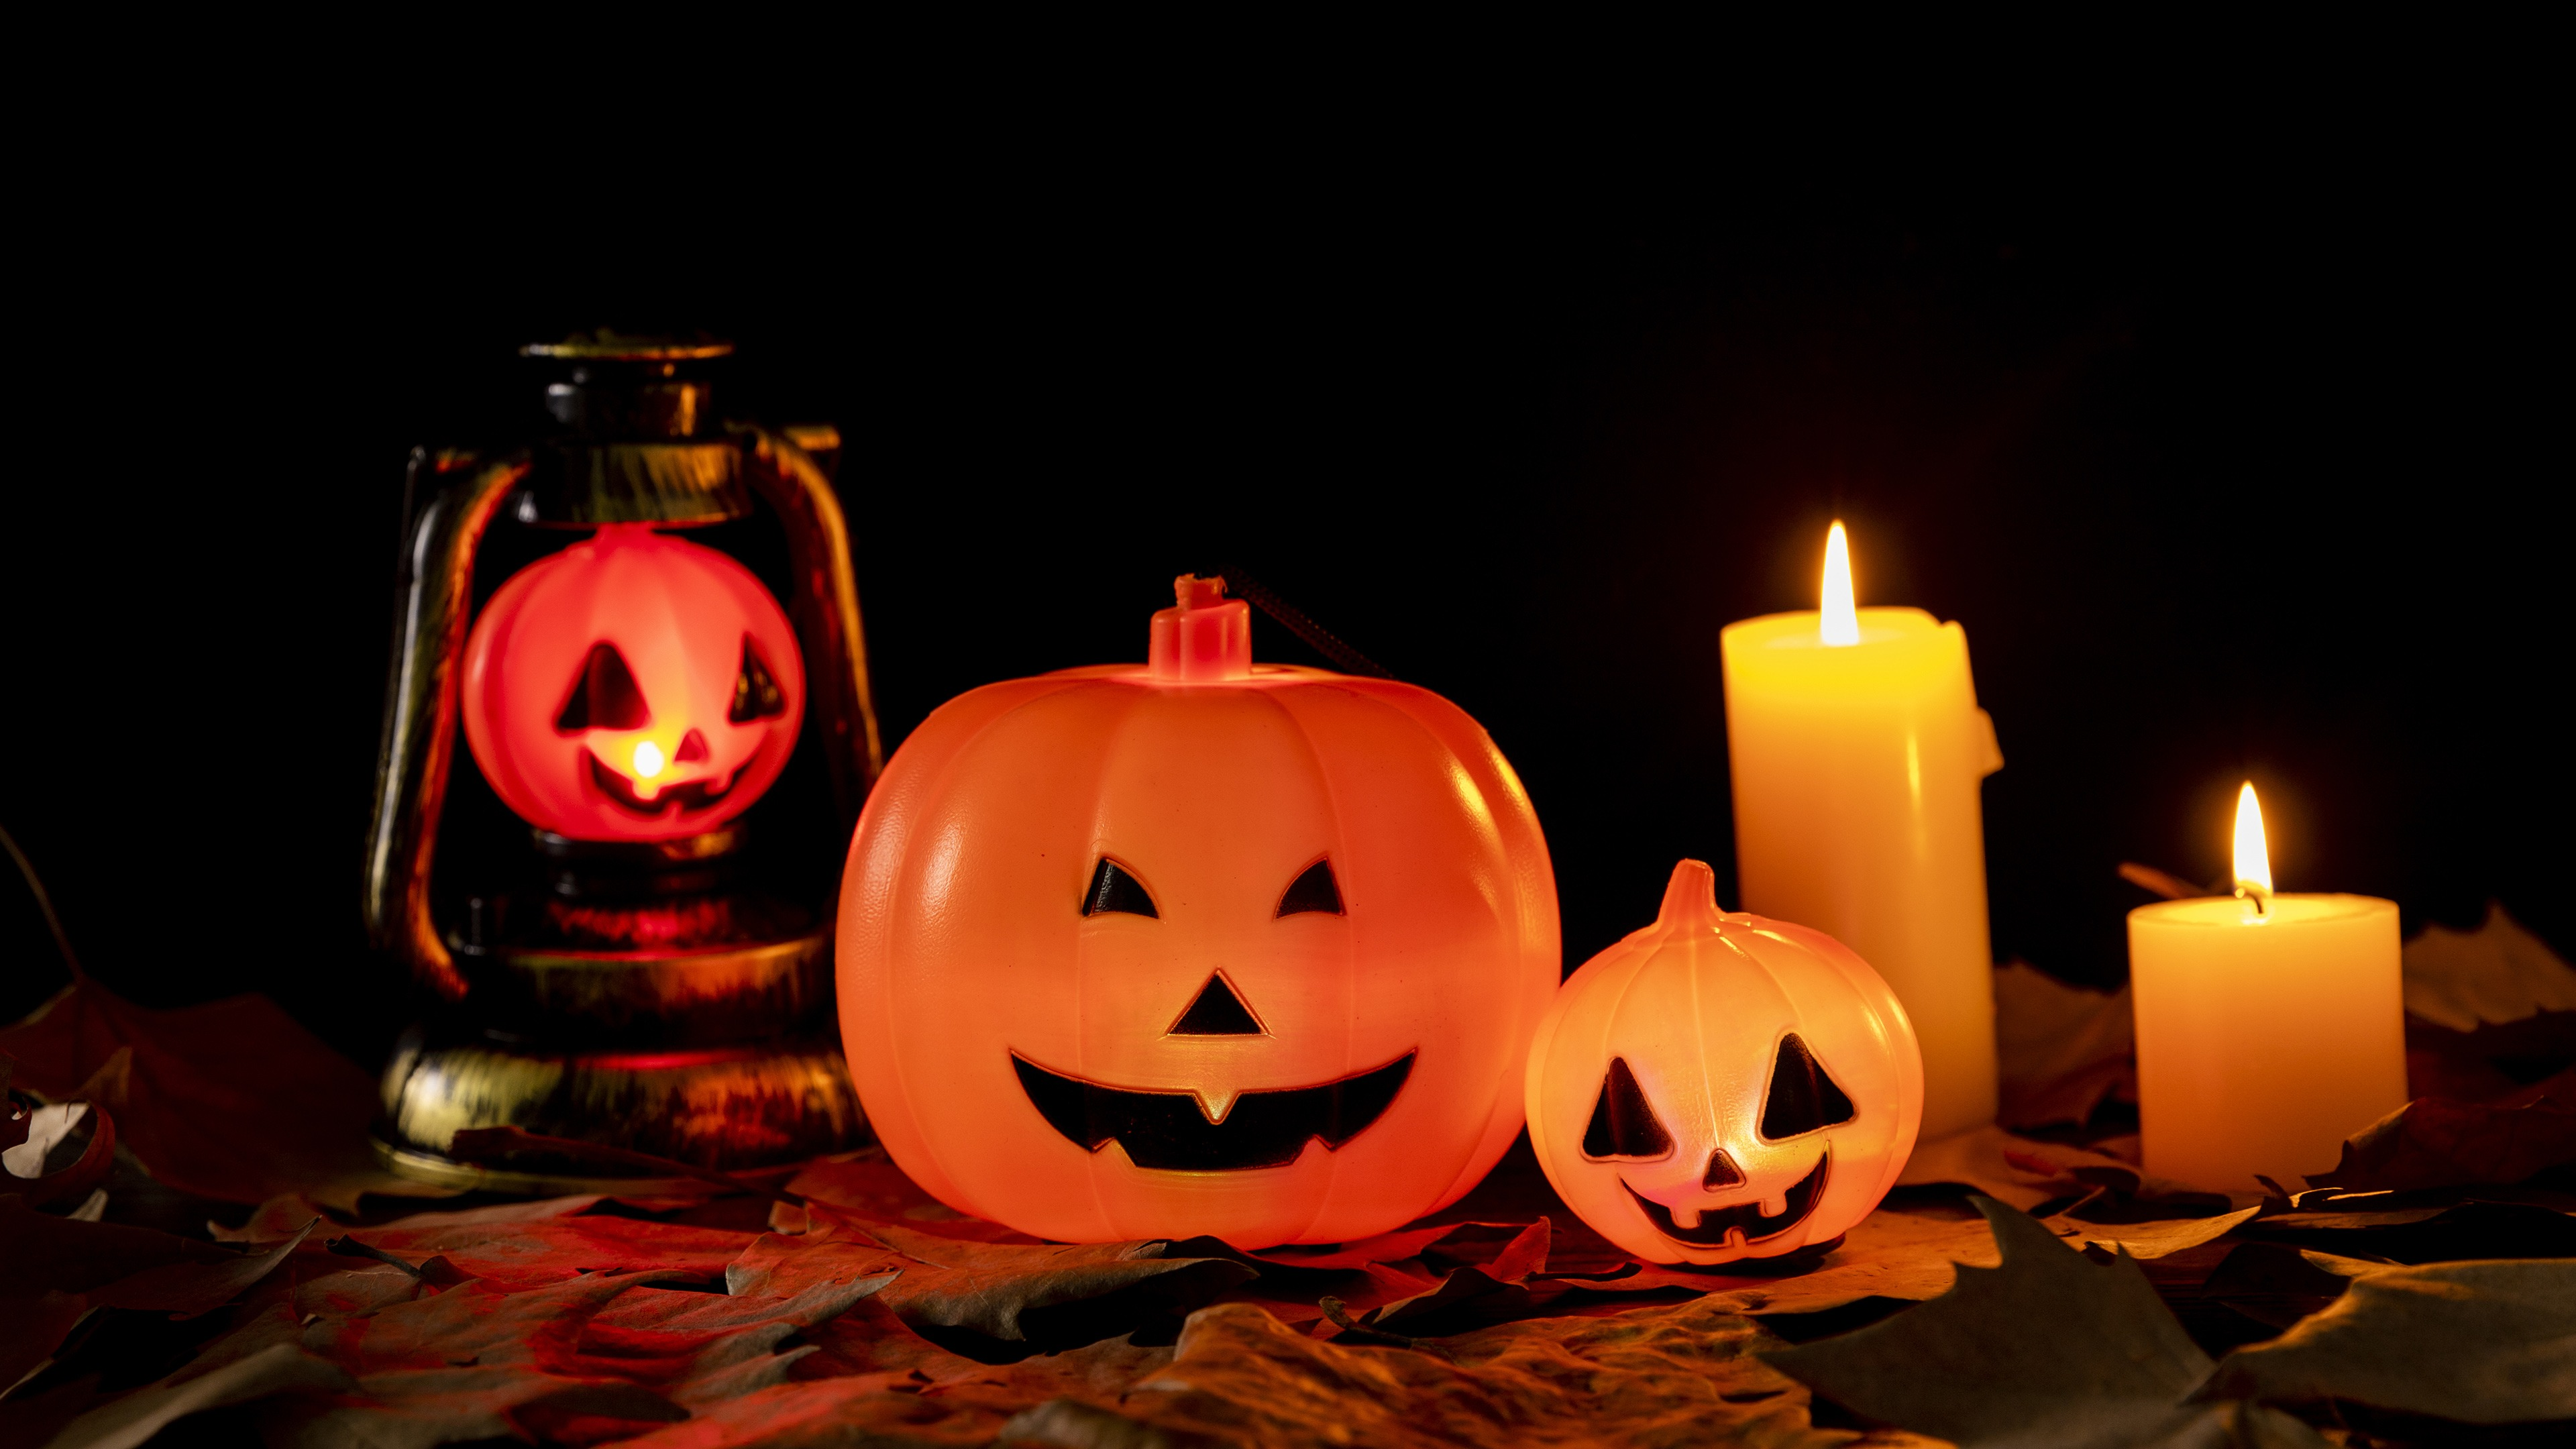 Halloween Pumpkin Lantern Photo HD Background 4K